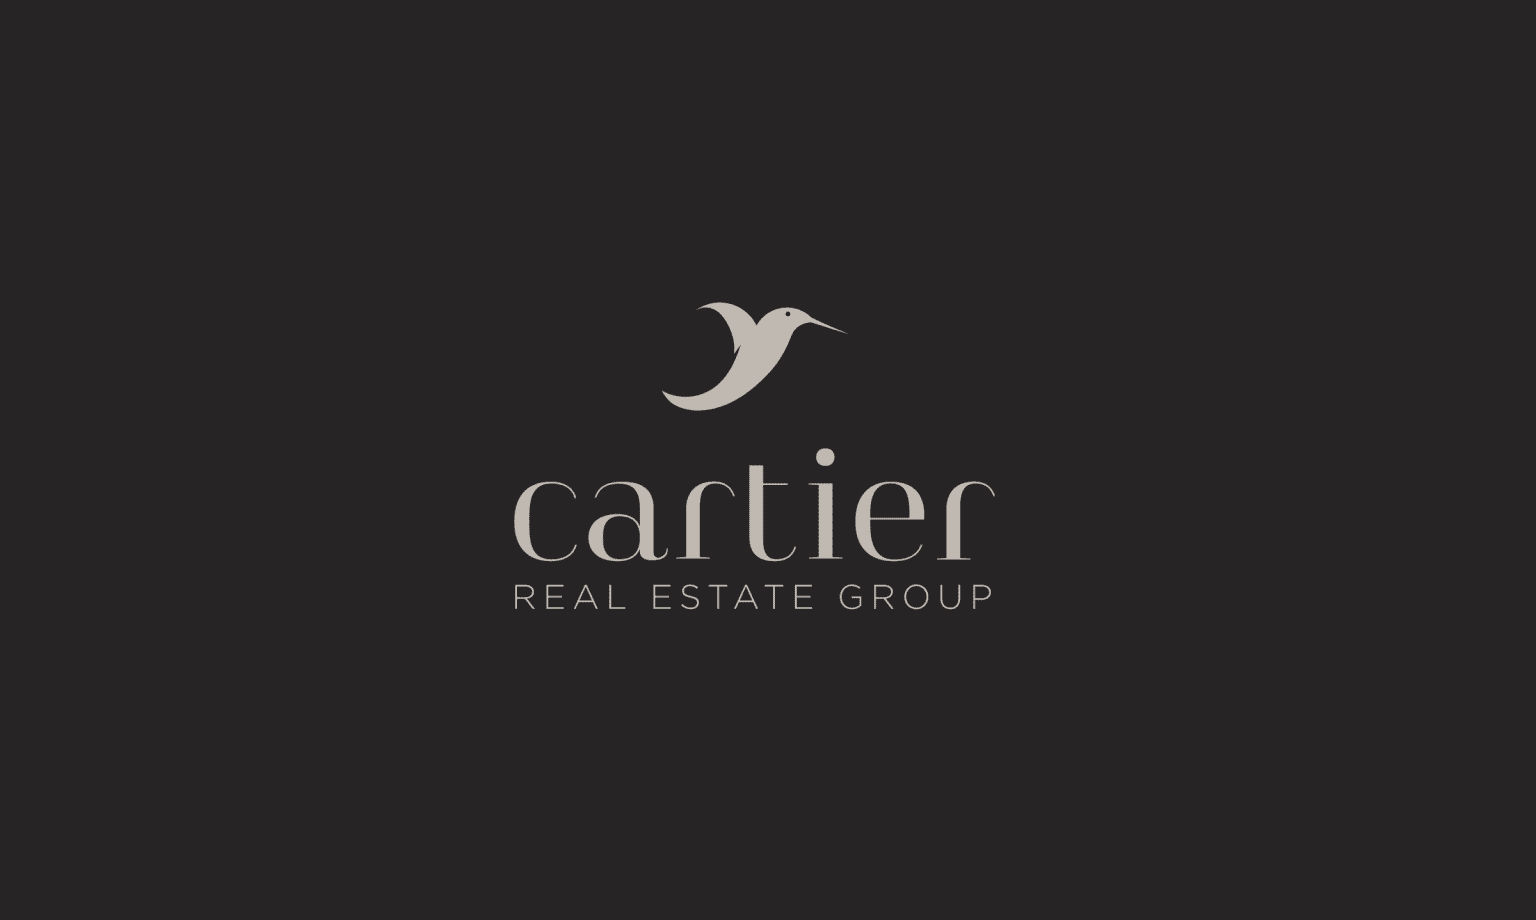 Cartier Real Estate Group Brand Identity